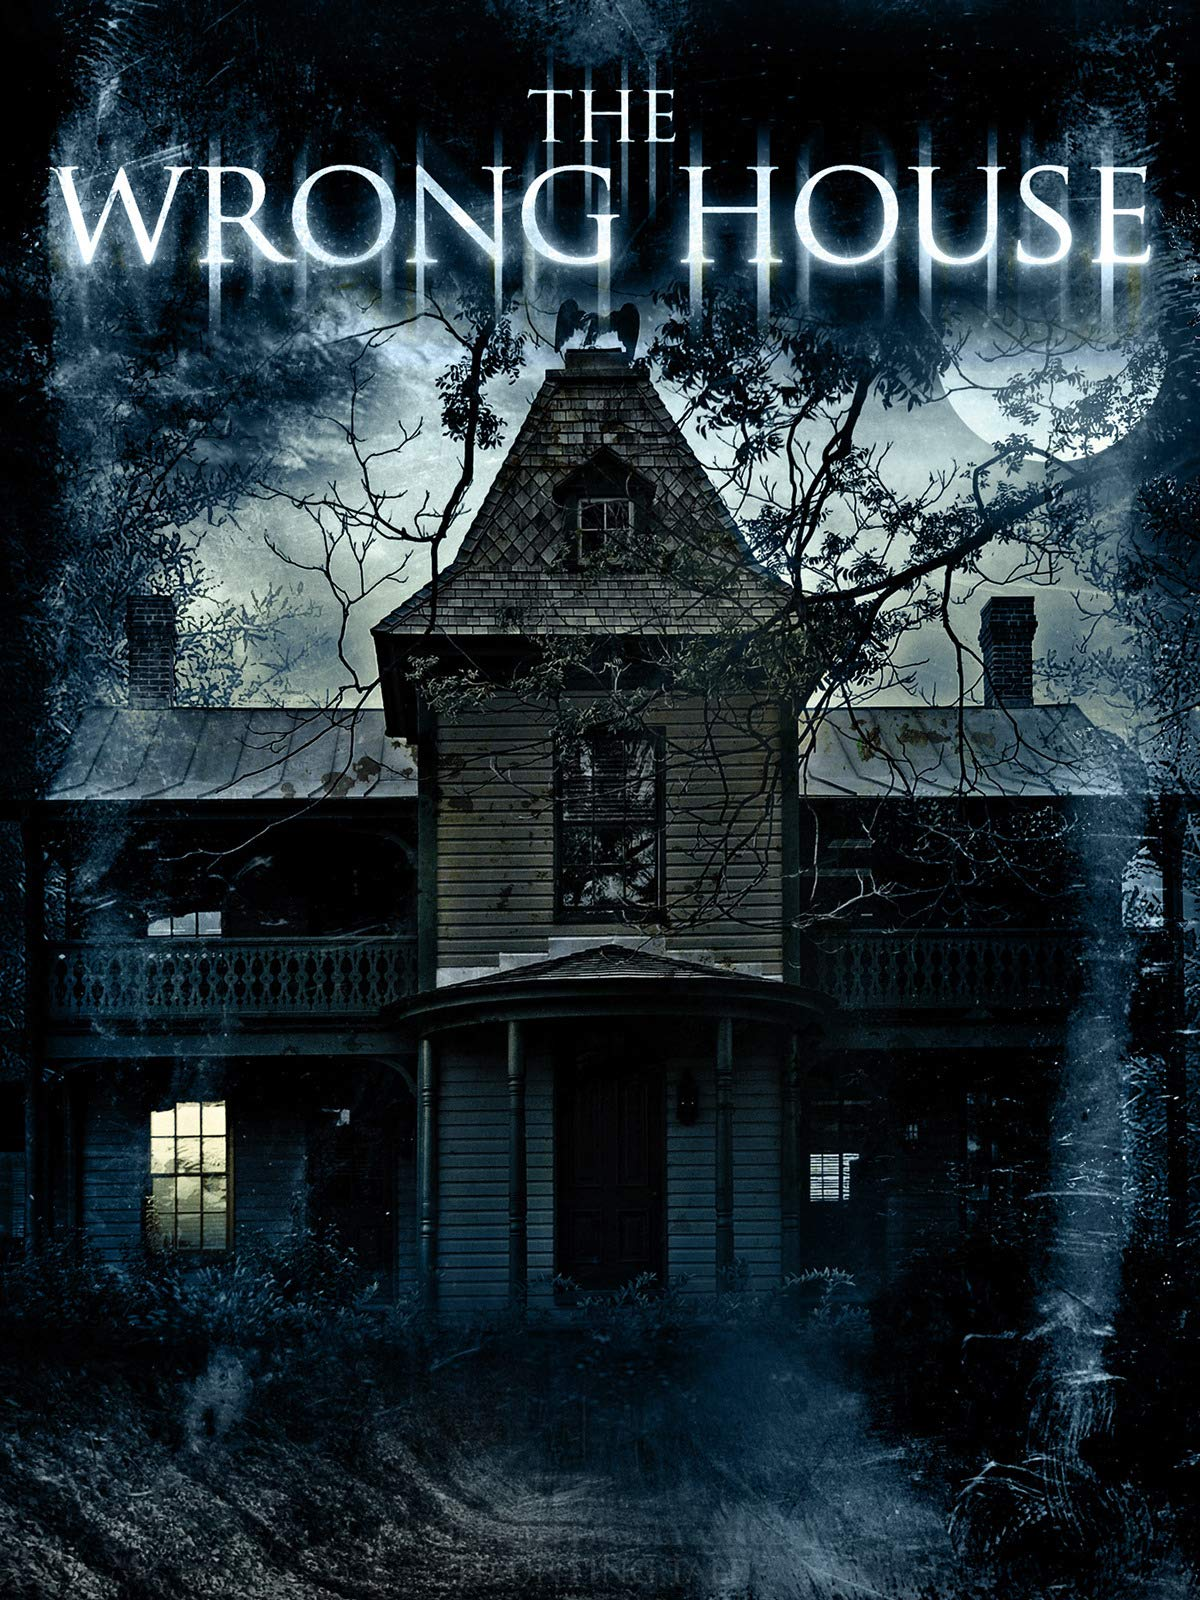 House Hunting - The Wrong House online film